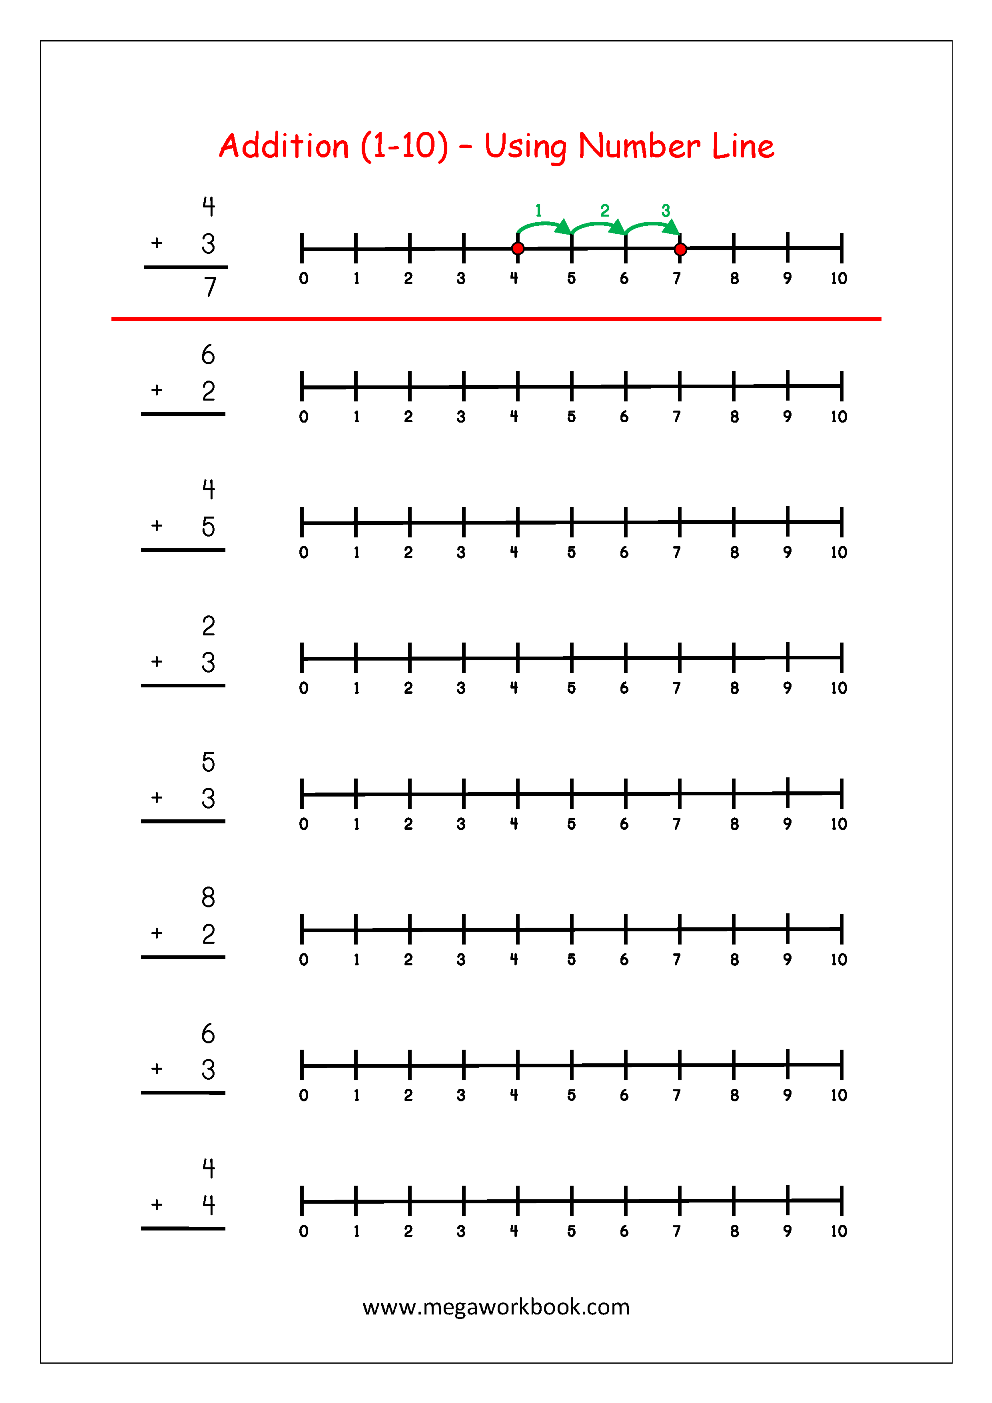 Worksheets Number Line Addition Worksheets free math worksheets number addition megaworkbook worksheet using line 1 10